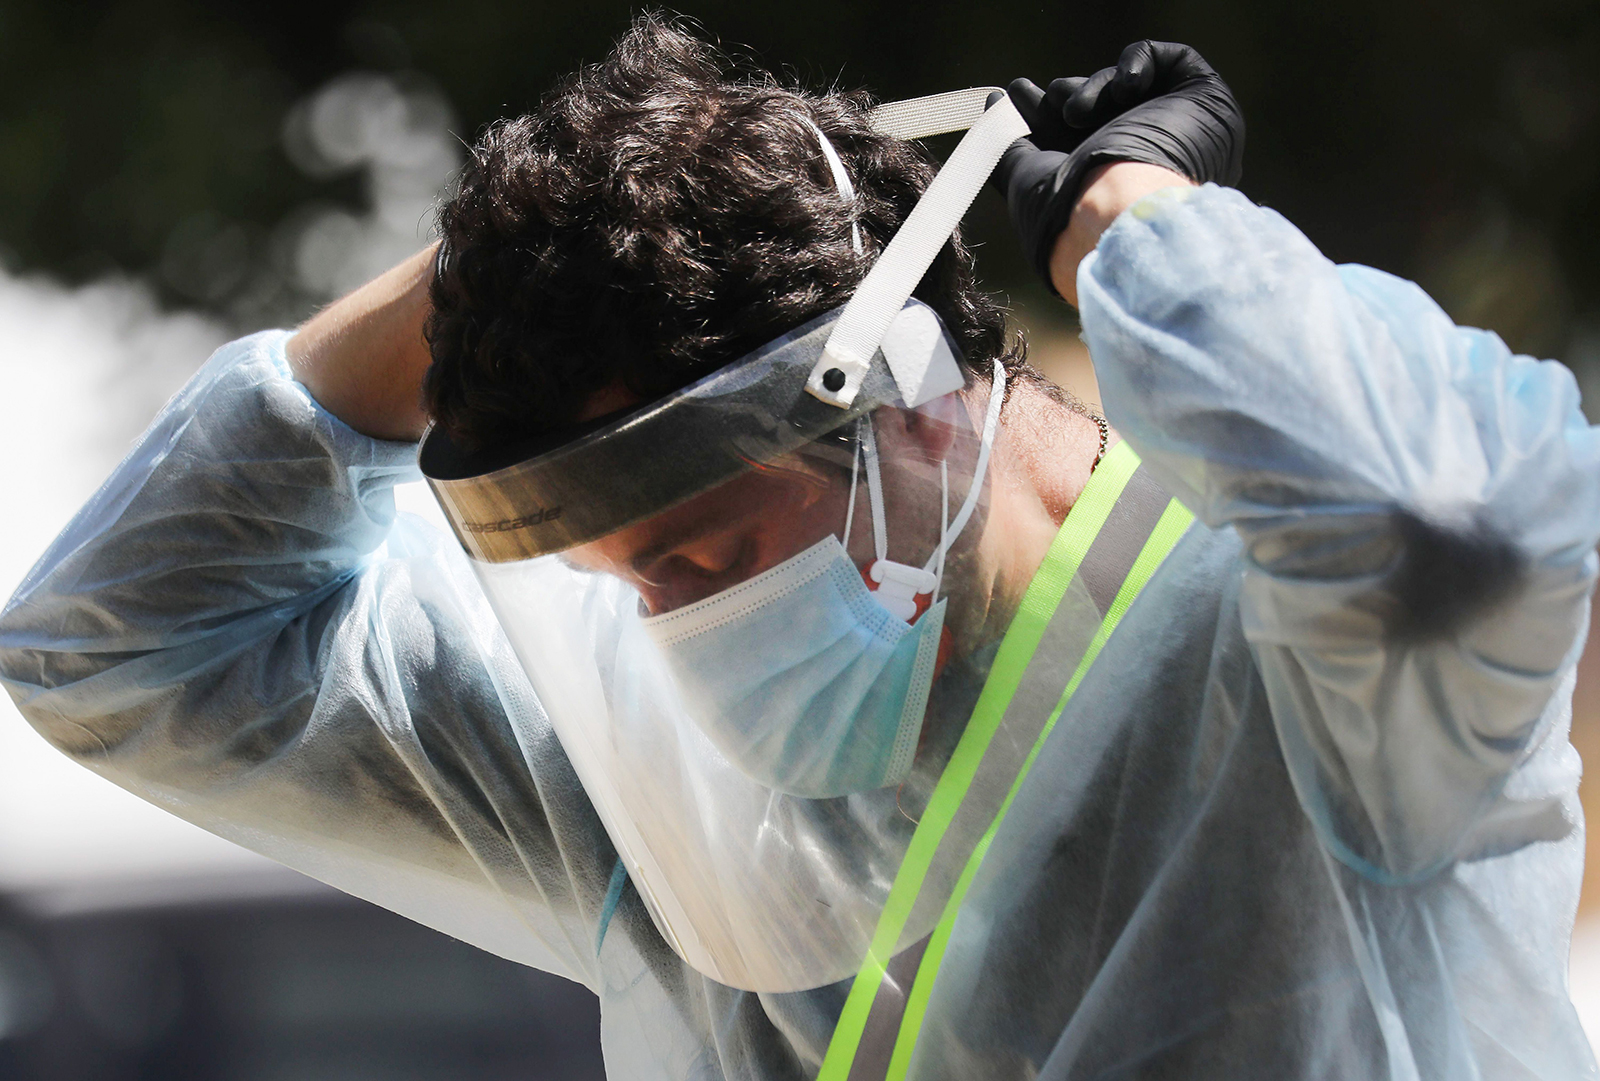 A COVID-19 testing associate adjusts his personal protective equipment (PPE) at a testing center at Lincoln Park amid the coronavirus pandemic on July 07, 2020 in Los Angeles, California. There has been a spike in new coronavirus cases in California along with an increase in the overall positivity rate and number of hospitalizations. (Mario Tama/Getty Images)